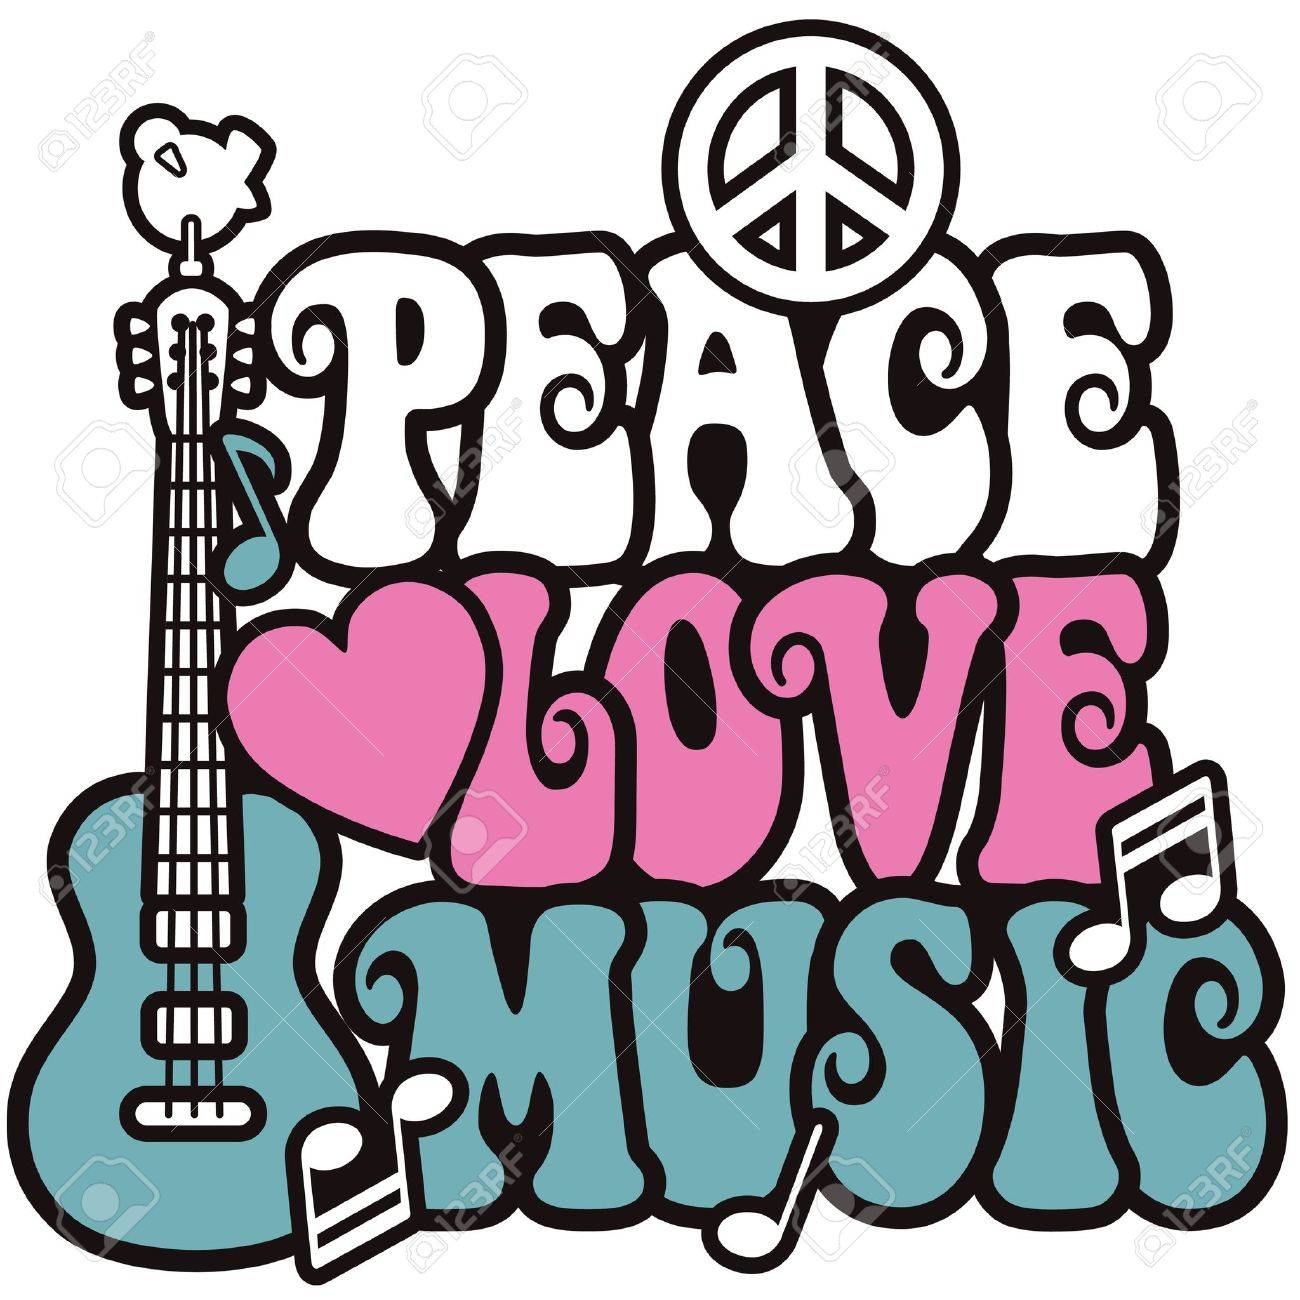 Retro Style Design Of A Guitar Peace Symbol And Dove With The